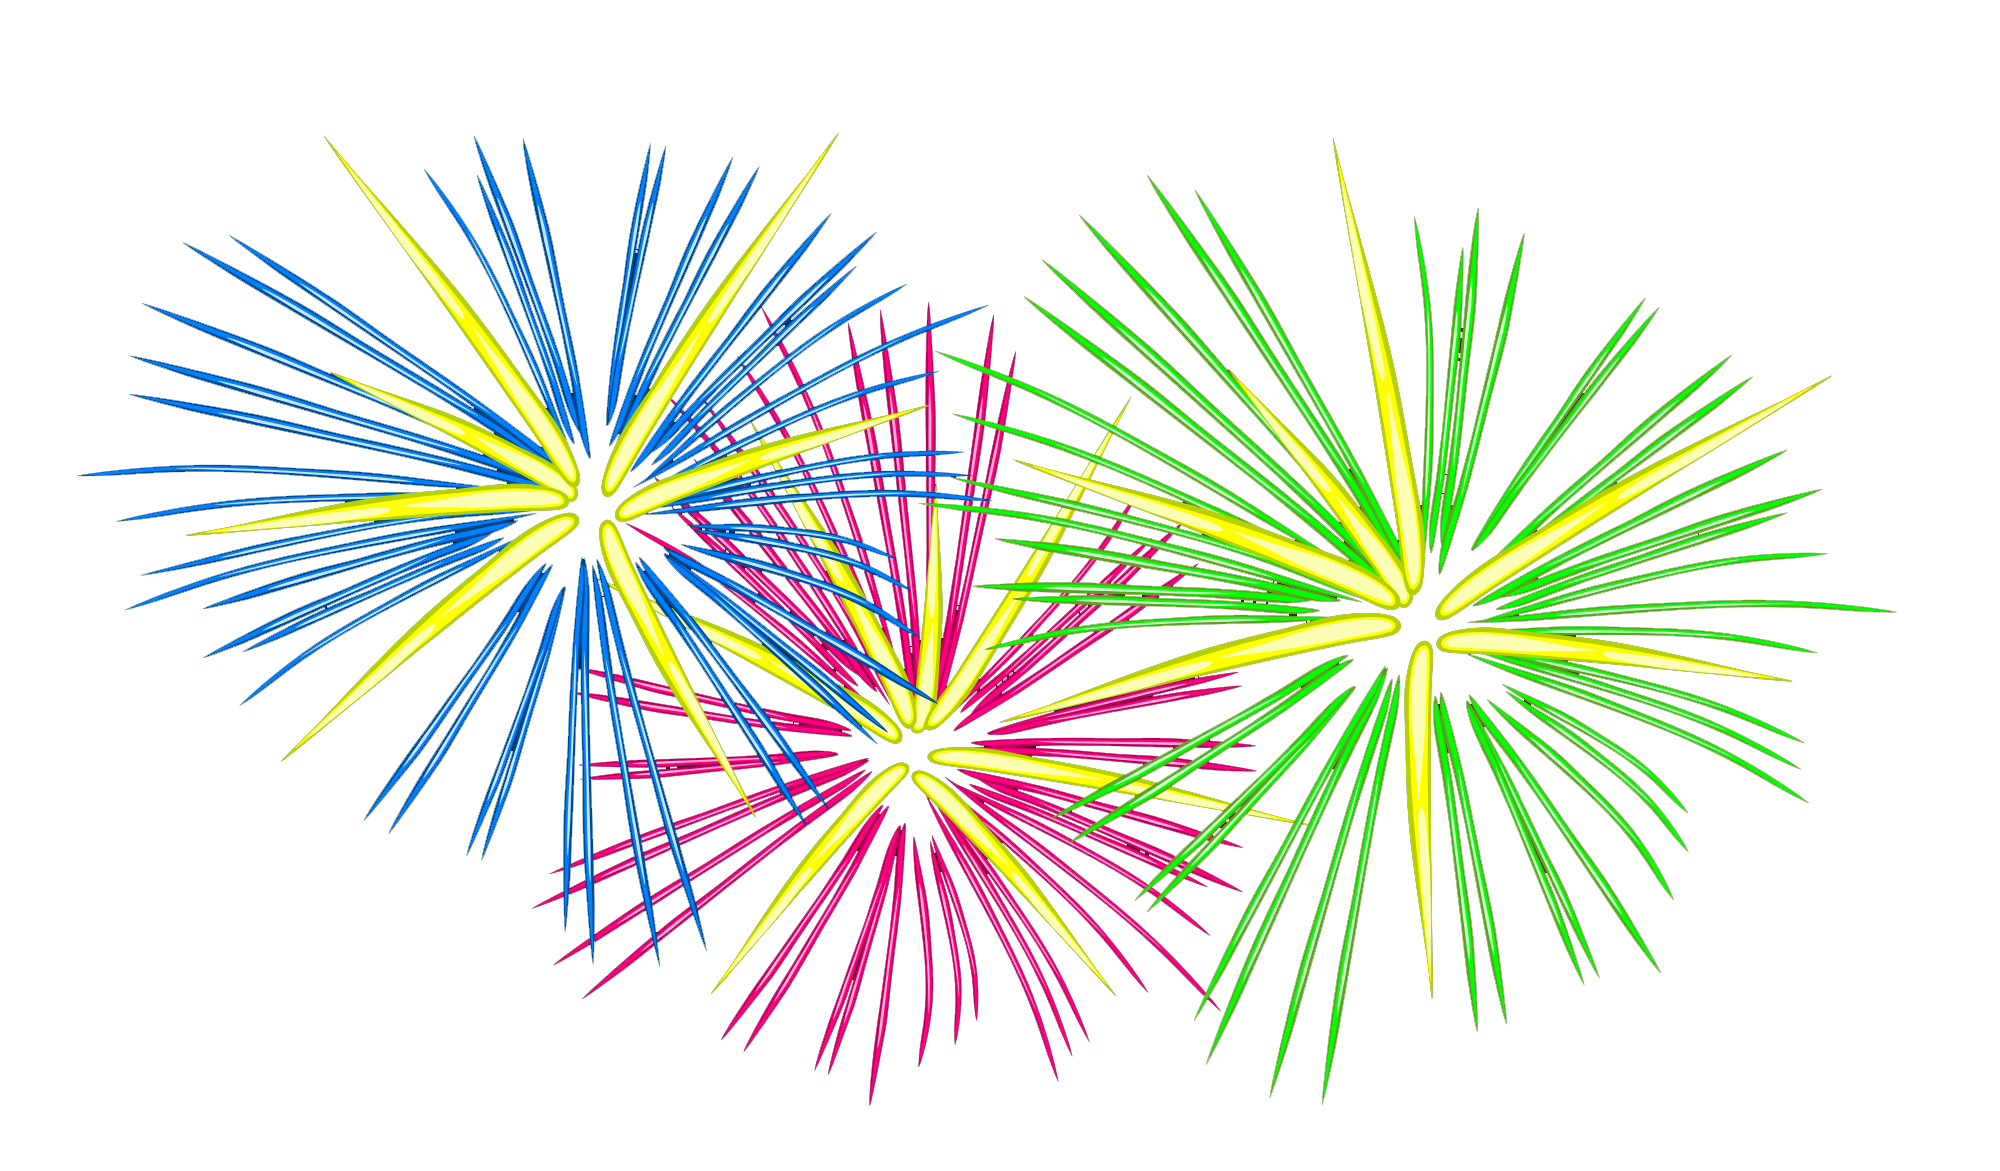 08f96676da5ba4c86db096a3789400 ... 08f96676da5ba4c86db096a3789400 ... Firework clip art clipart